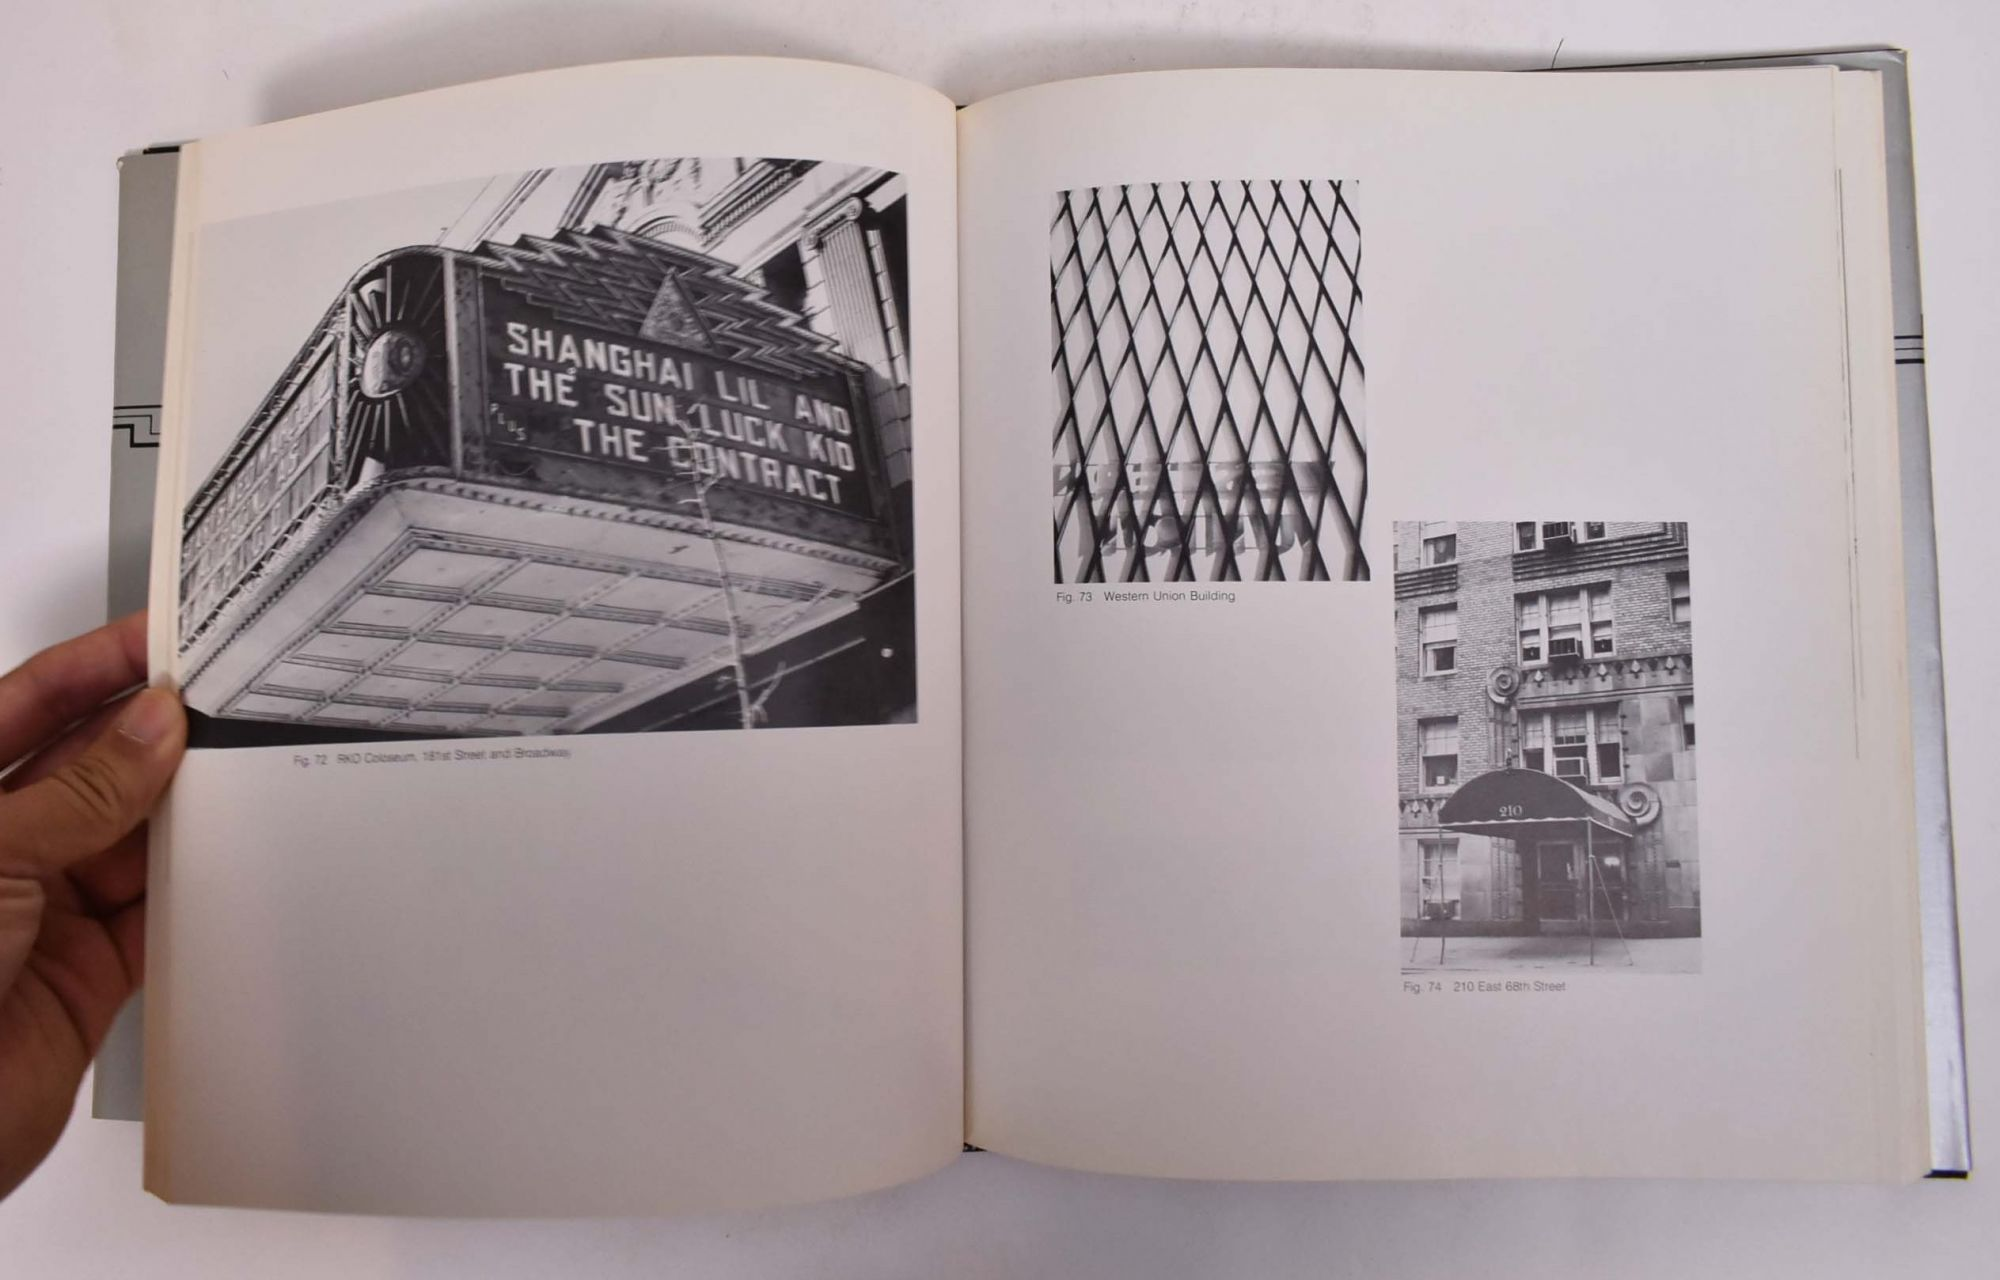 Art Deco Style Notebook Art Deco Architecture In New York 1920 1940 By Don Vlack On Mullen Books